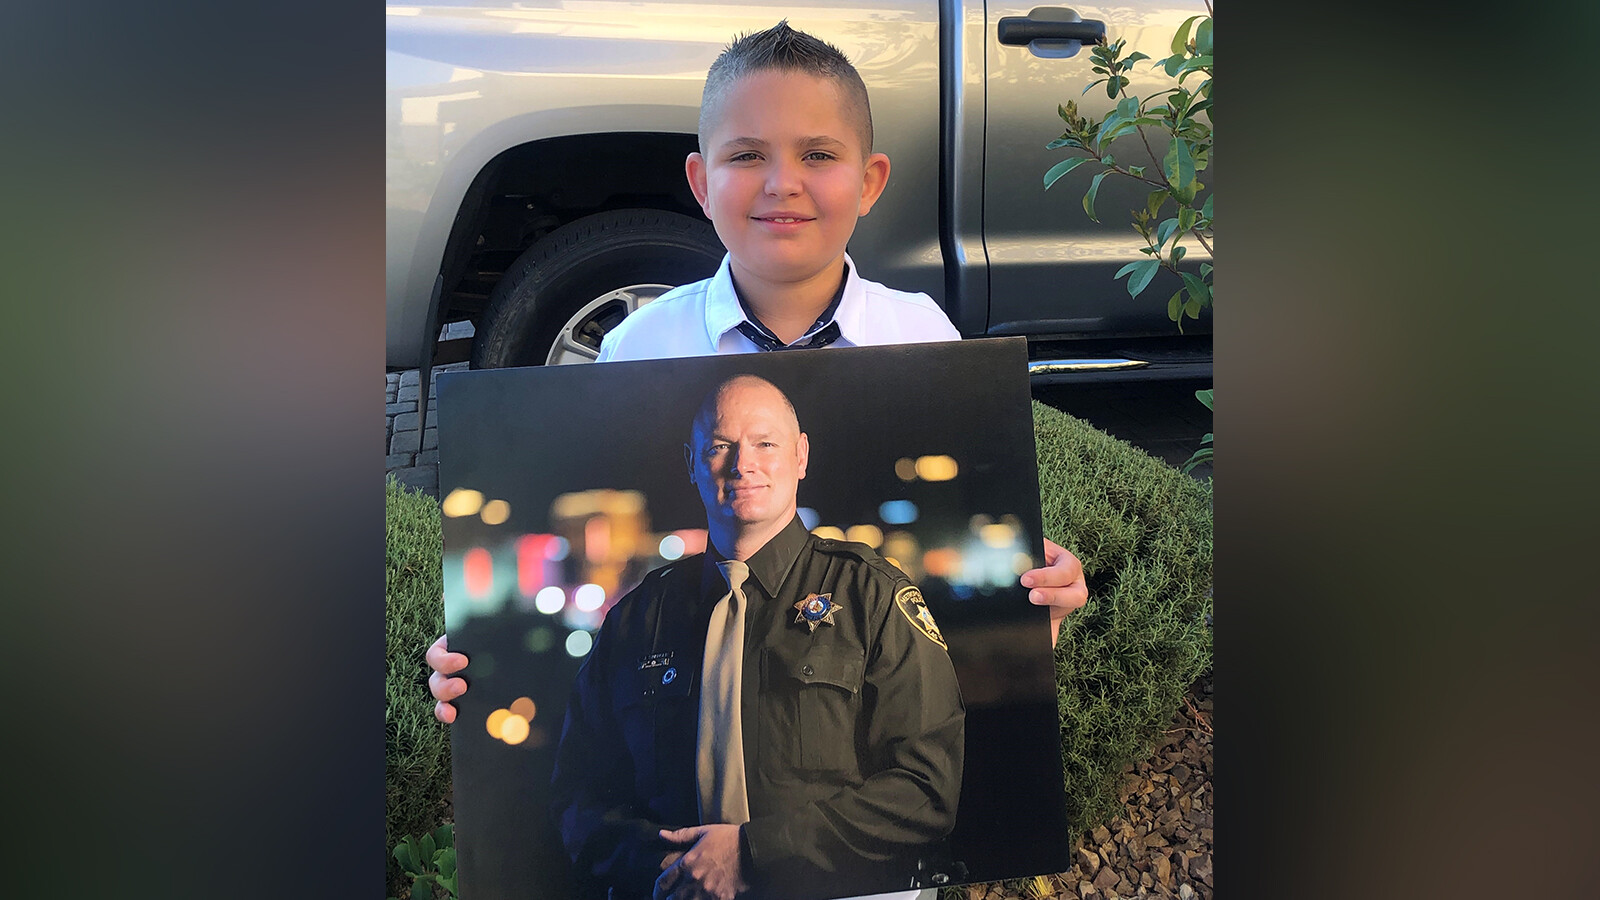 His dad, a police officer, died from Covid-19. Fellow officers escorted him to his first day of school